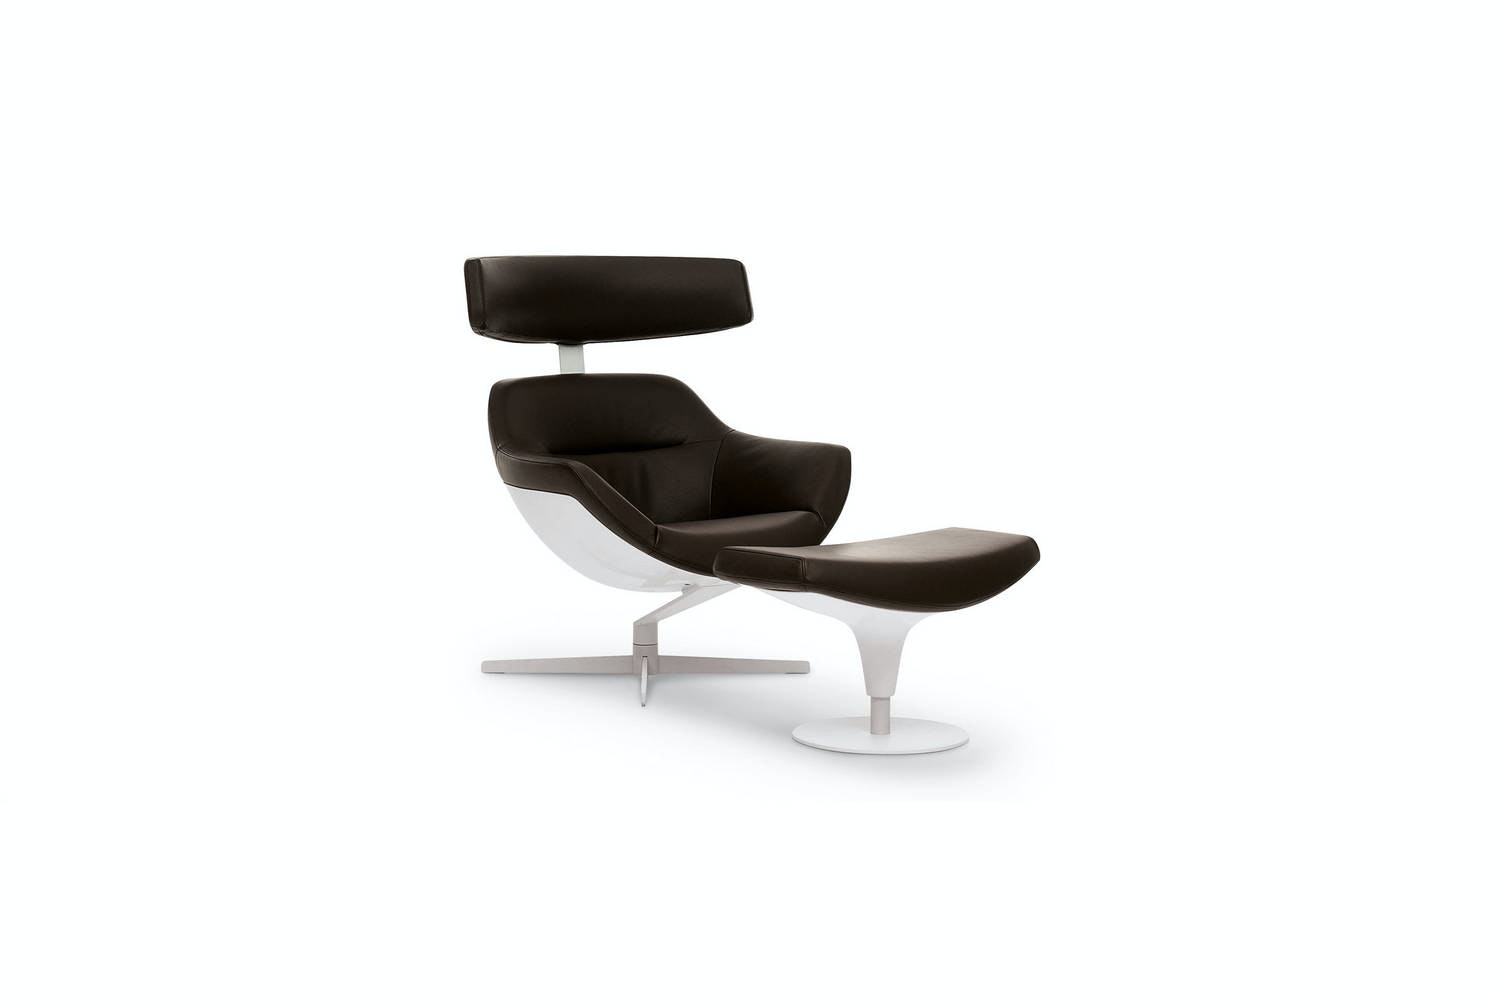 277 Auckland Armchair by Jean-Marie Massaud for Cassina